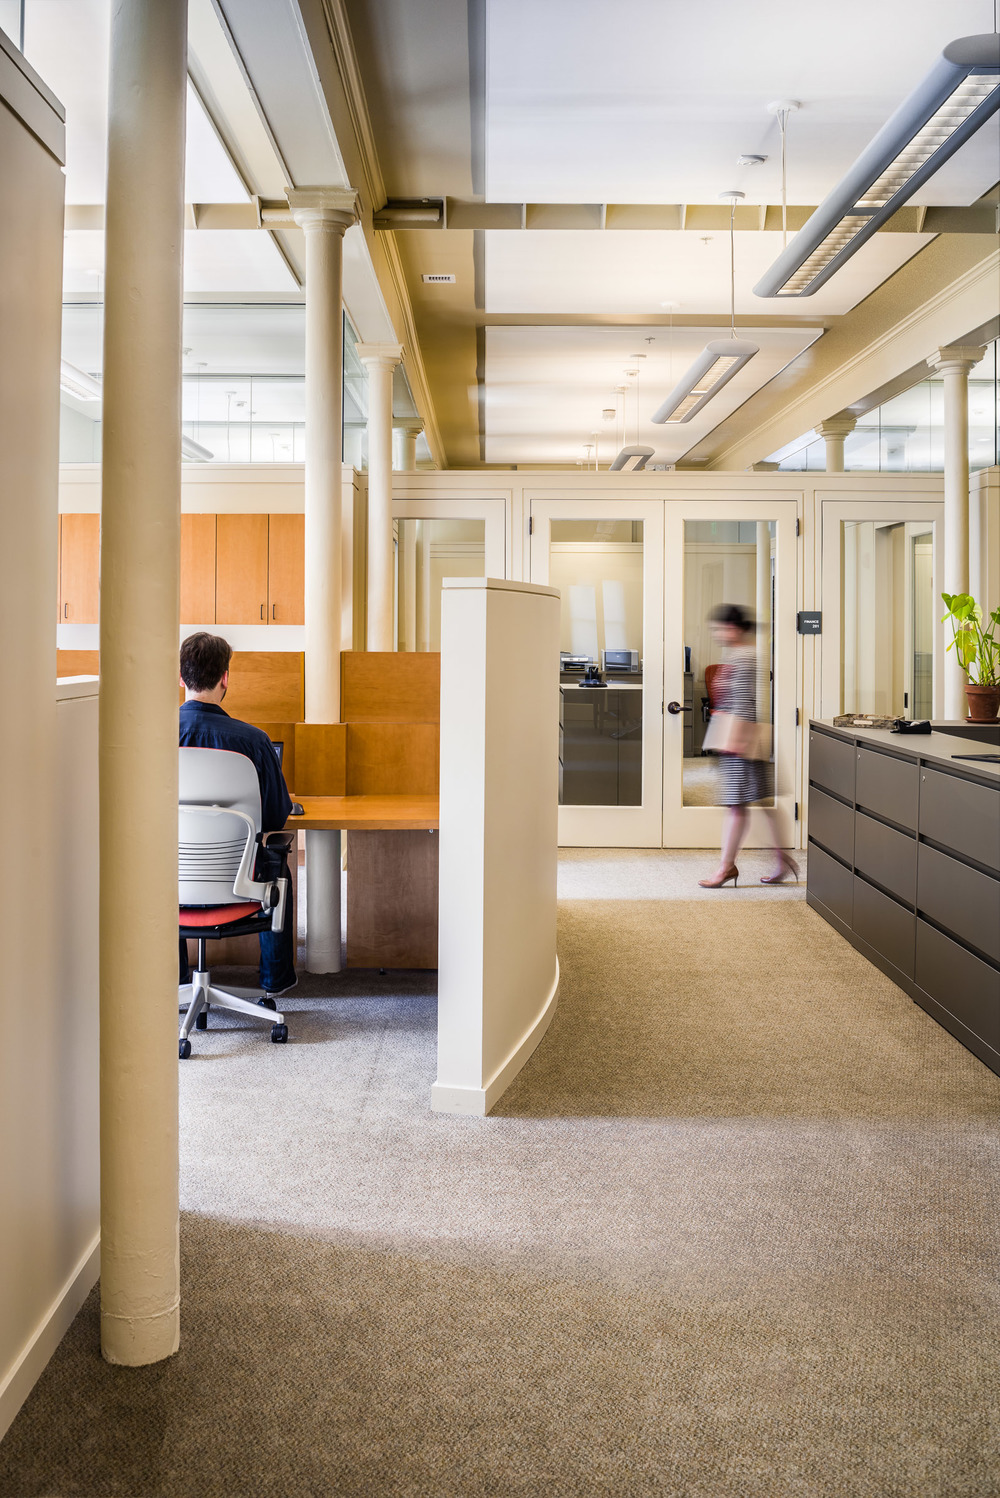 Adaptive Reuse Design, Administrative Office Photographed for Futures Without Violence The strong lines and receding perspective of this space drew me to this image. I love the subtle play of reflections in the glass above and in the door.